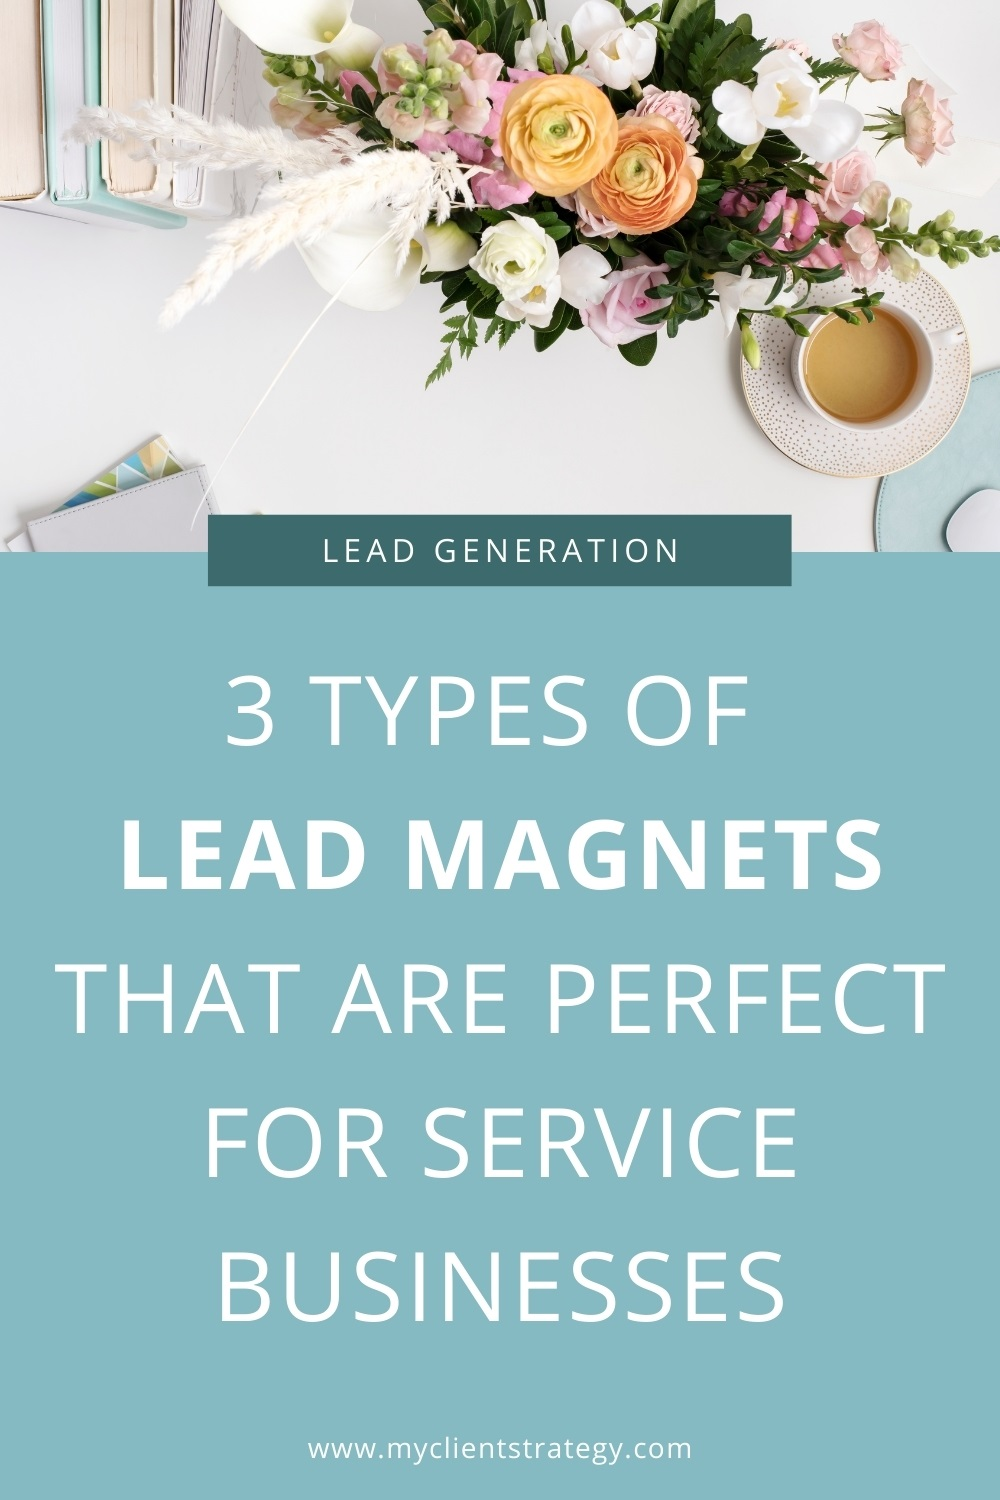 Types of lead magnets that are perfect for service businesses